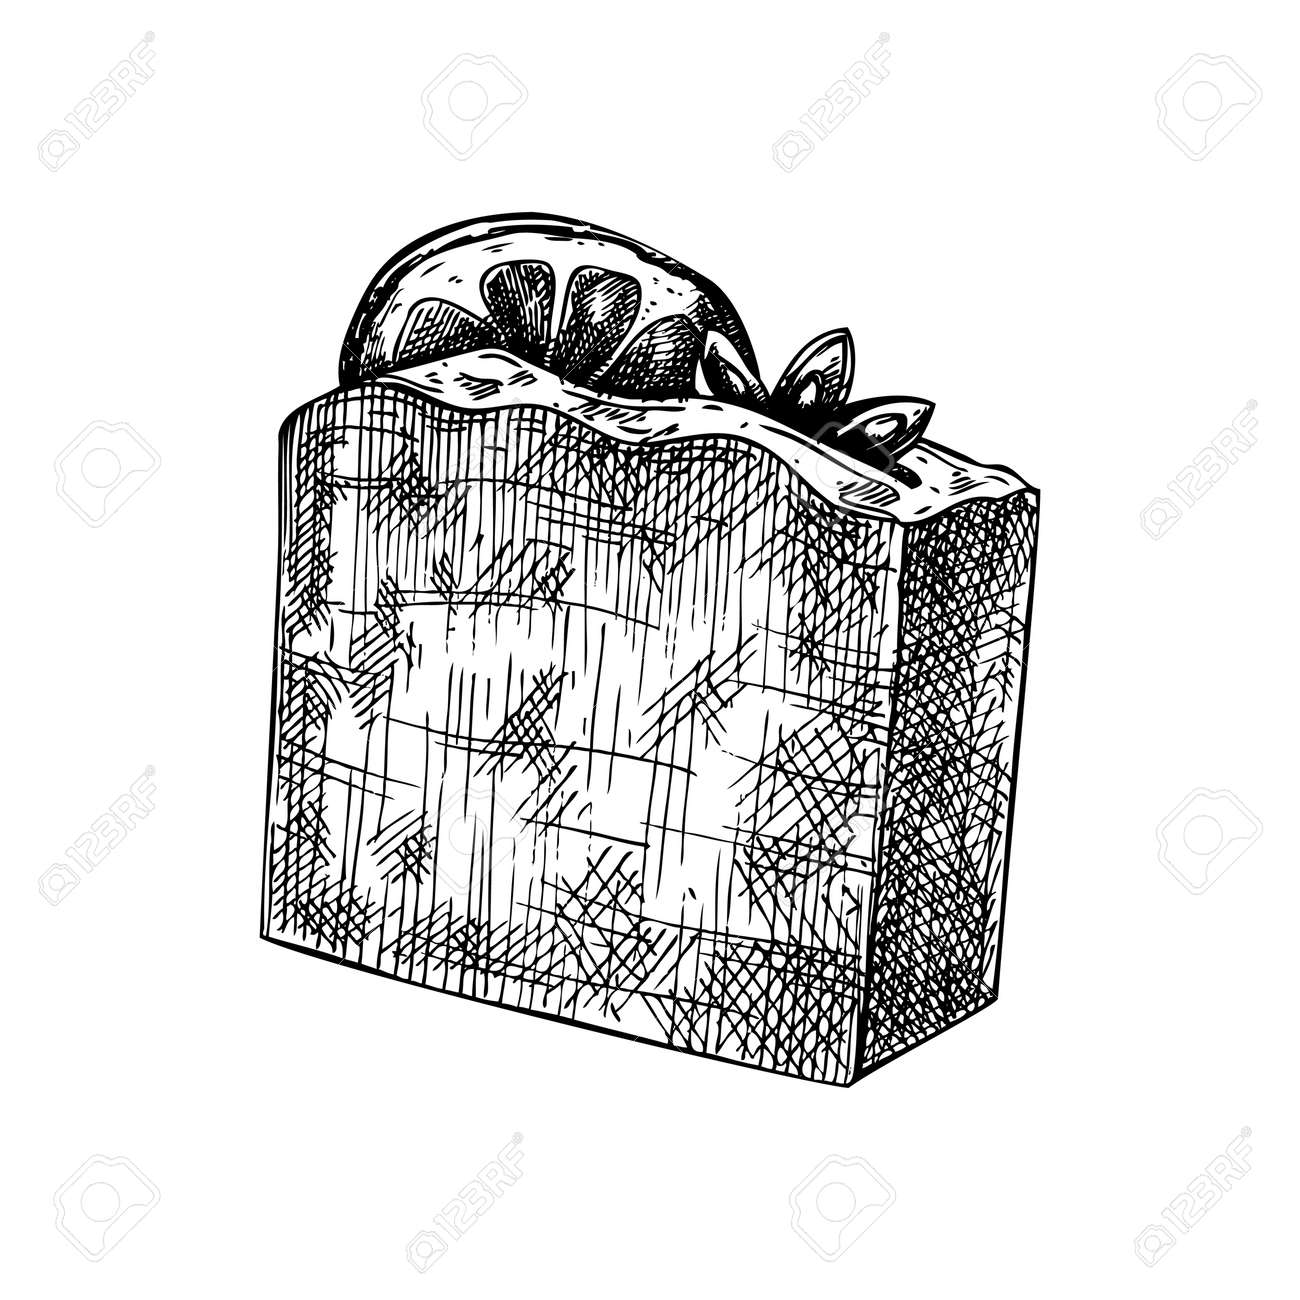 Hand-sketched aromatic soap illustration. Vector drawing of hand drawn soap bar with spice and citrus fruits. For a beauty salon identity, bathroom or spa. - 170065921